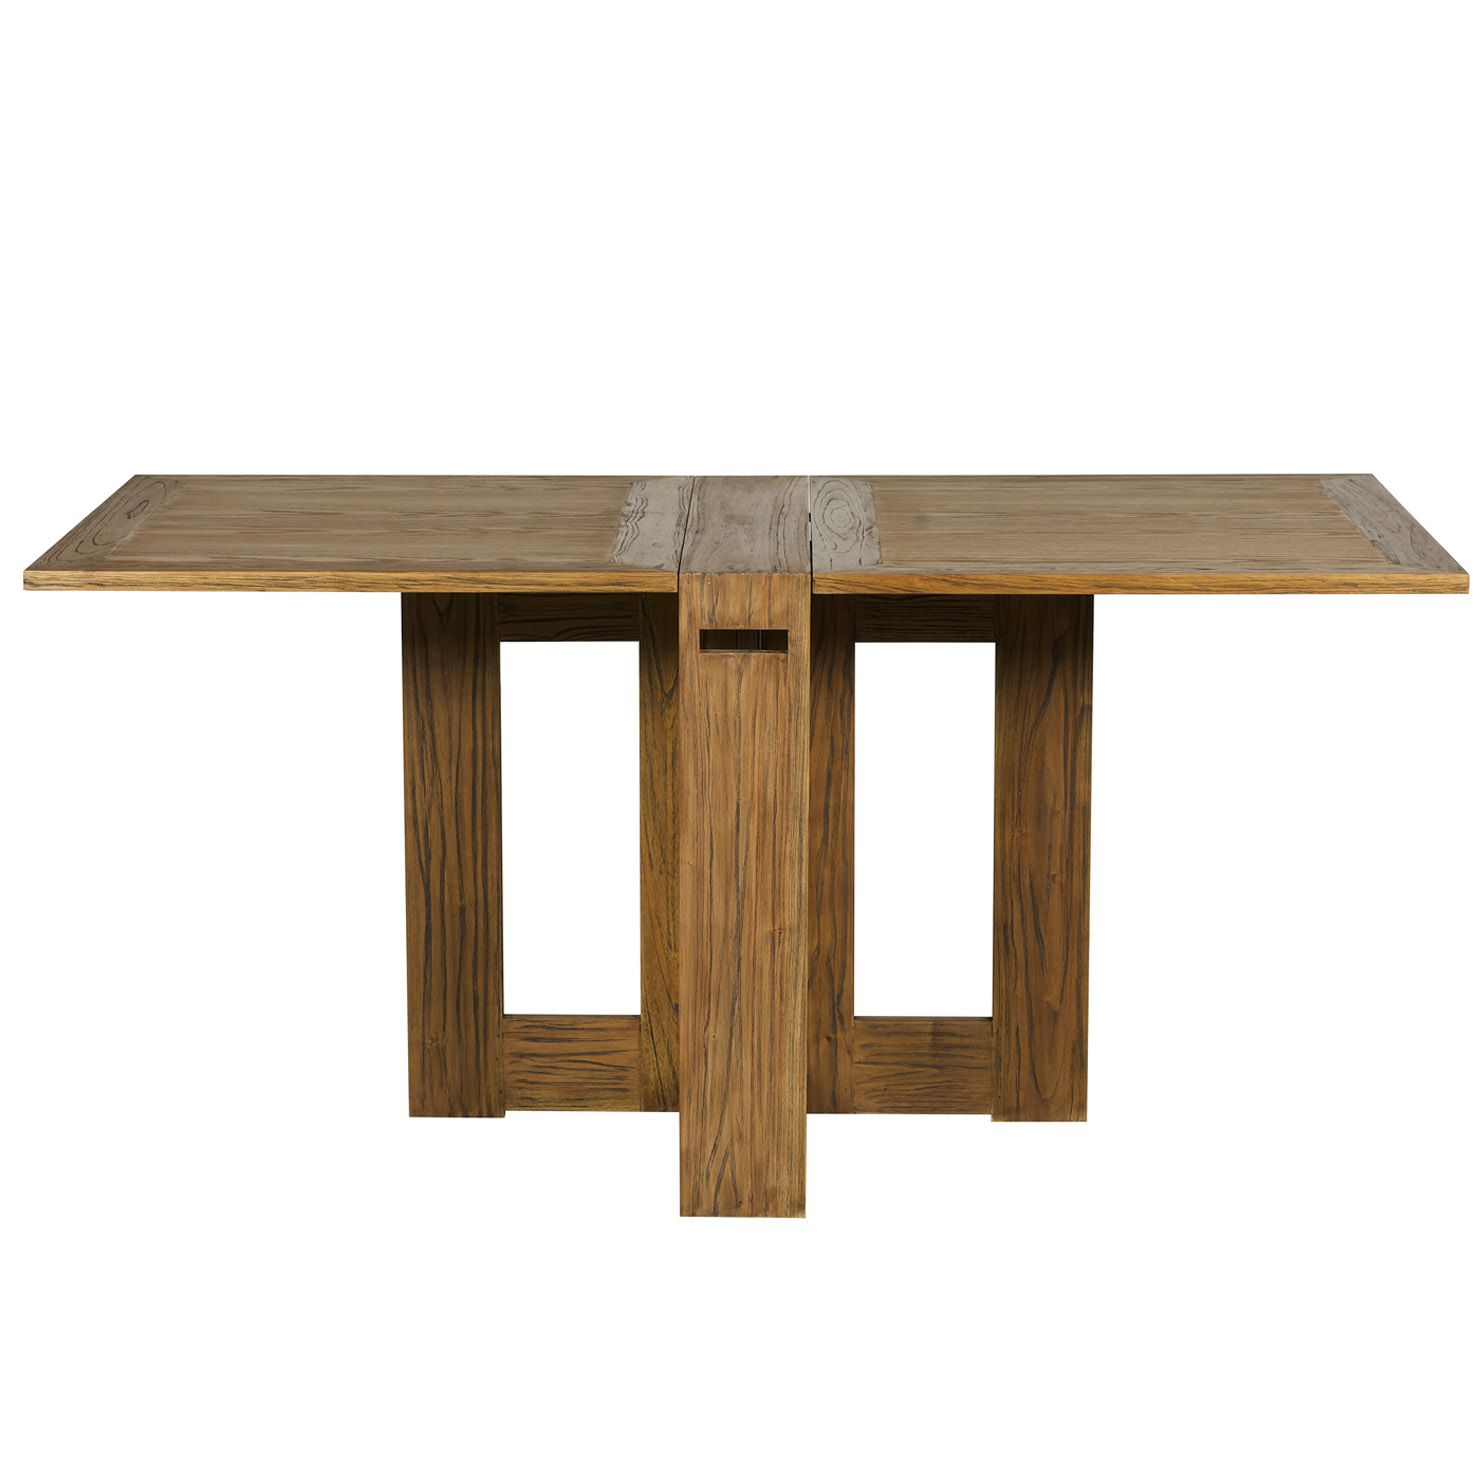 ACHICA Siwua Square Folding Dining Table